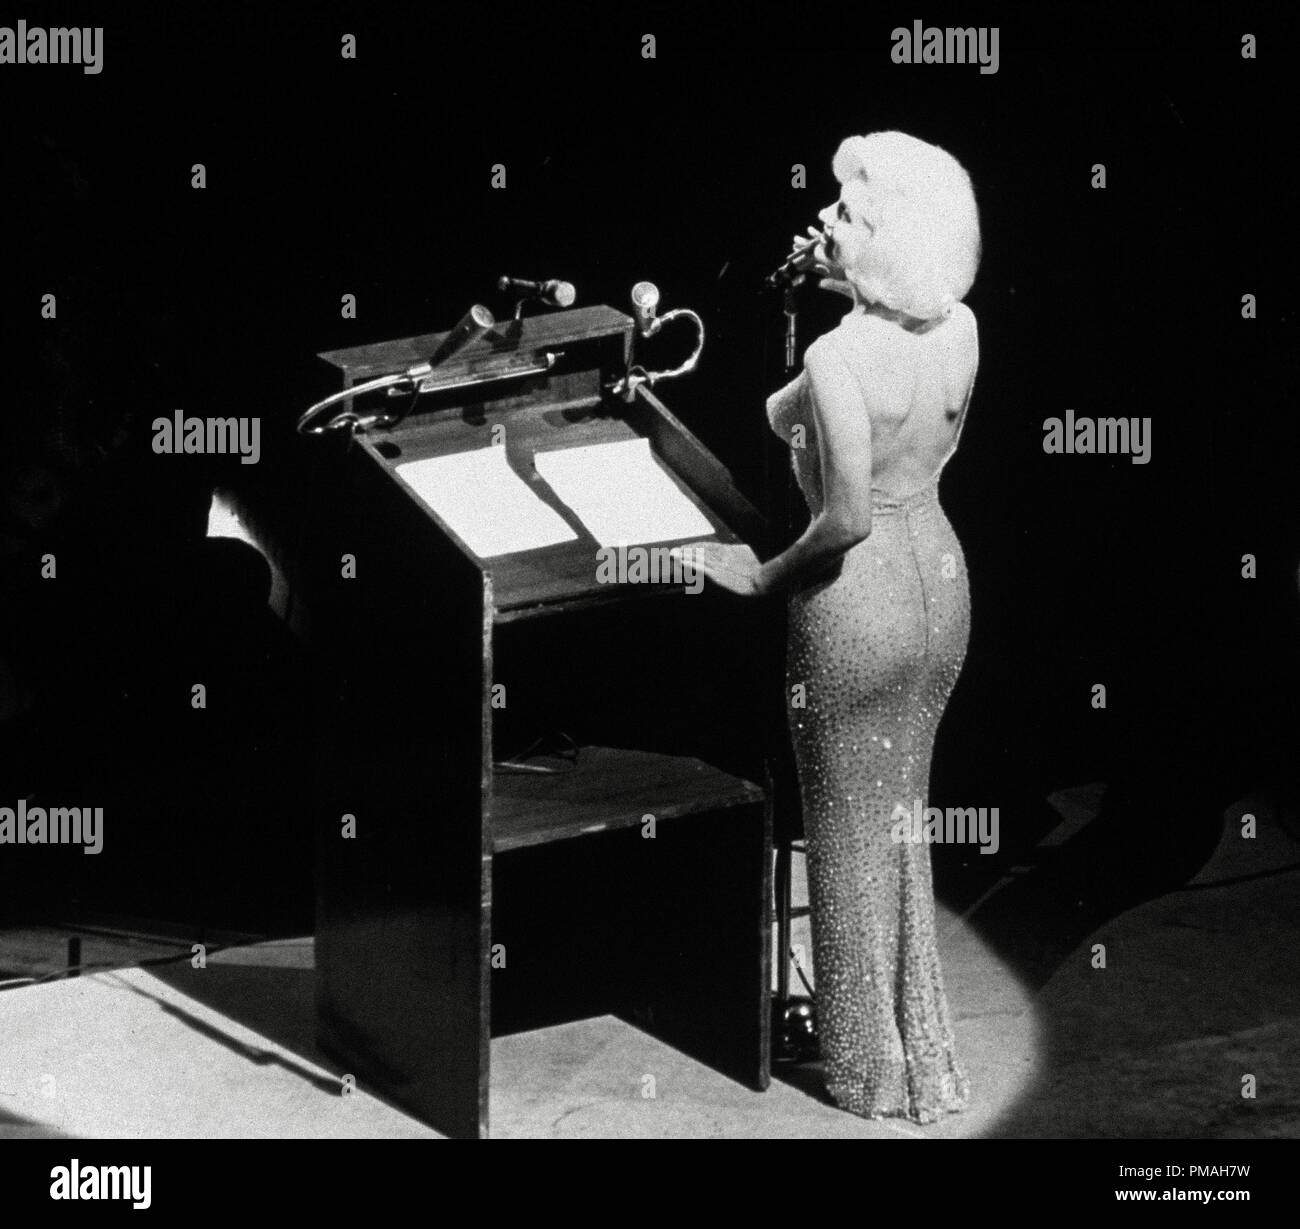 Marilyn Monroe Sings Happy Birthday To President John F Kennedy At Madison Square Garden For His Upcoming 45th Birthday File Reference 32733 507tha Stock Photo Alamy